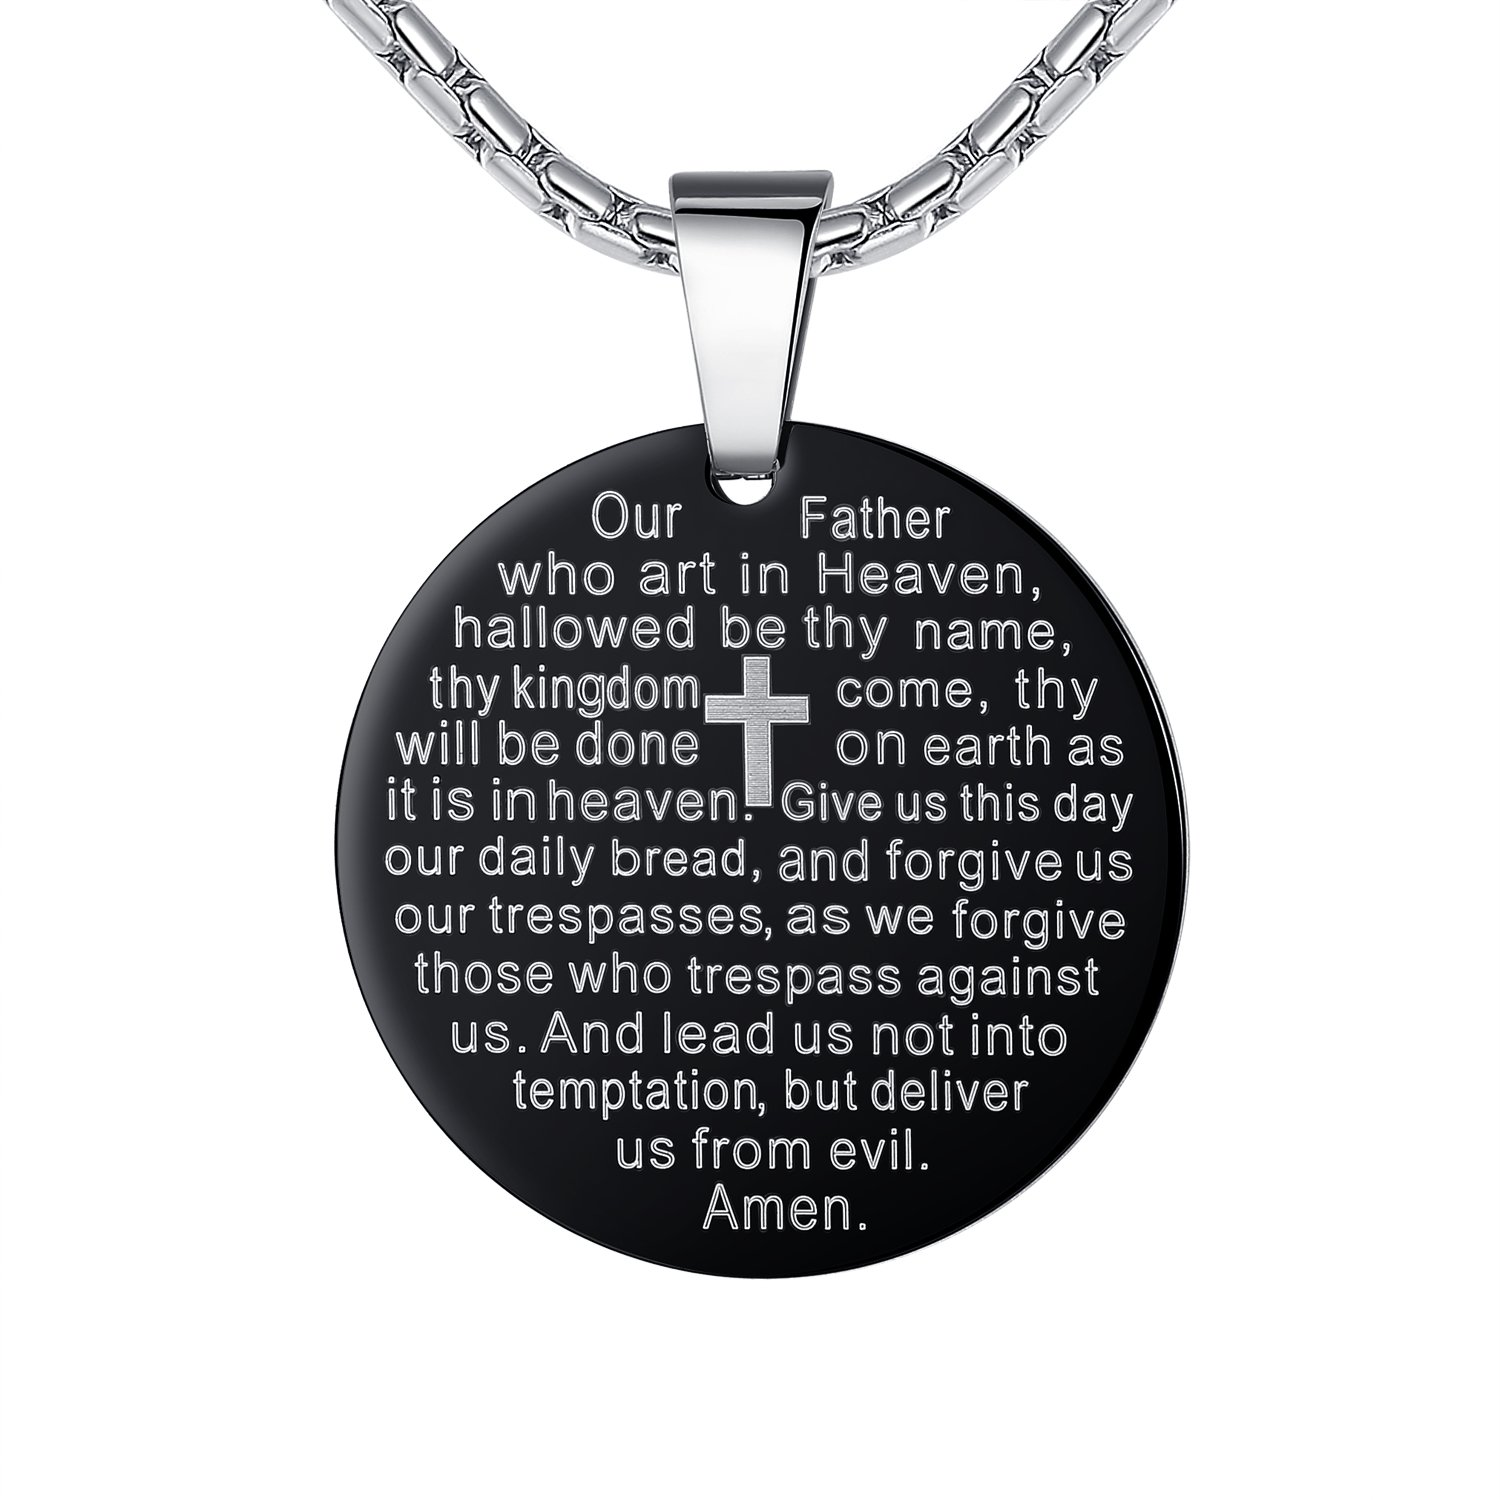 q jewellery fishpond original necklace prayer online com buy au from serenity c